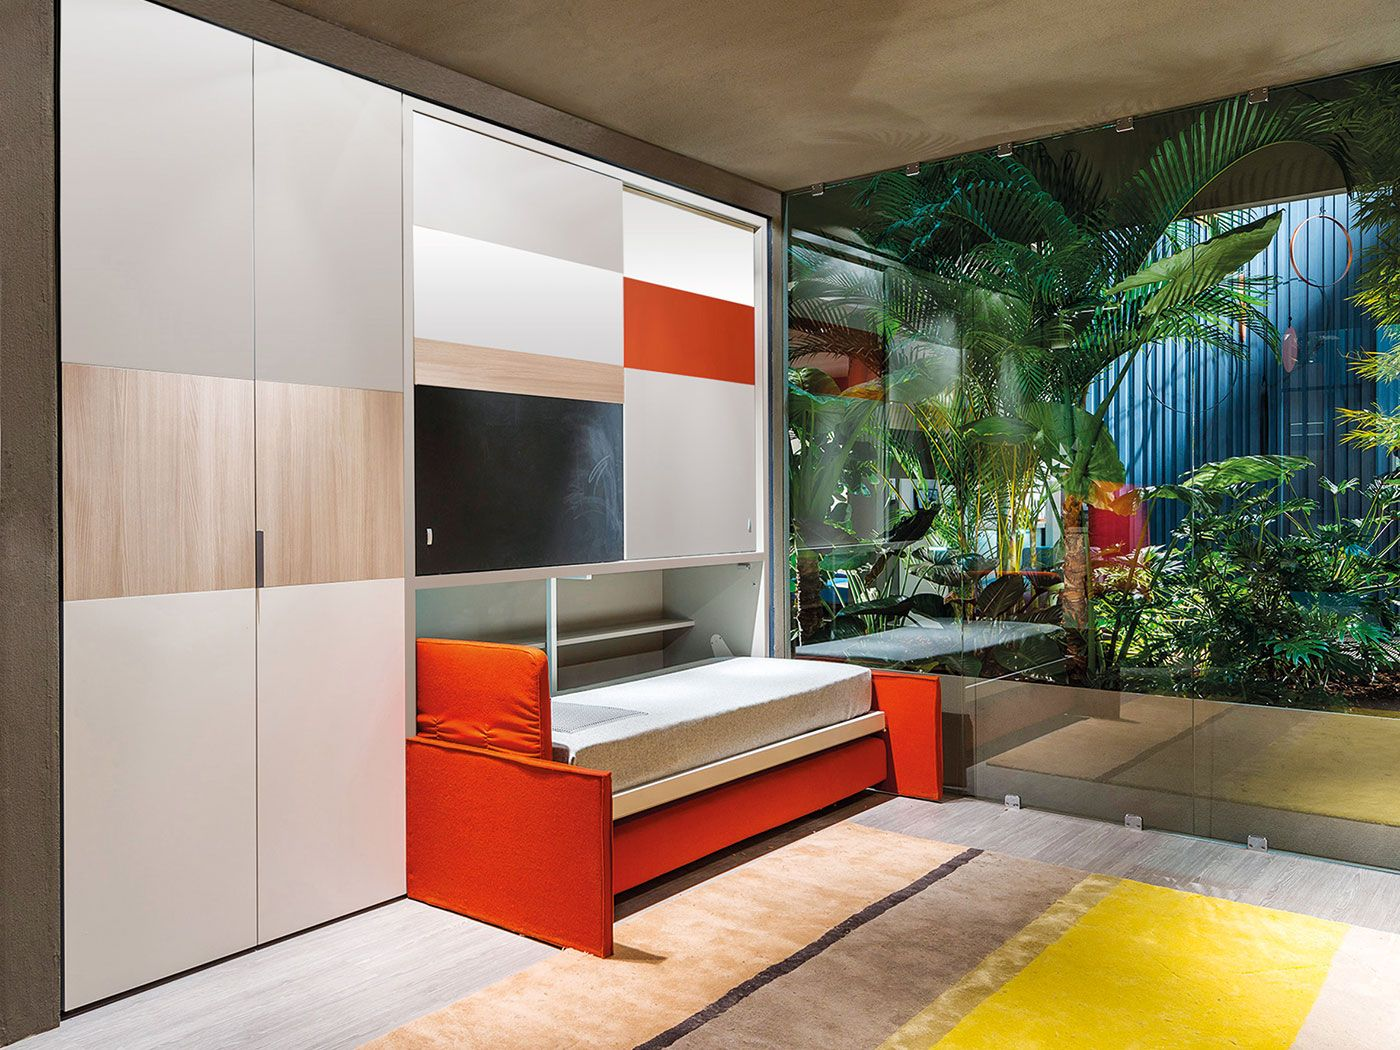 Ferrimobili Opinioni ~ The children bedroom is composed by: desk that becomes a single